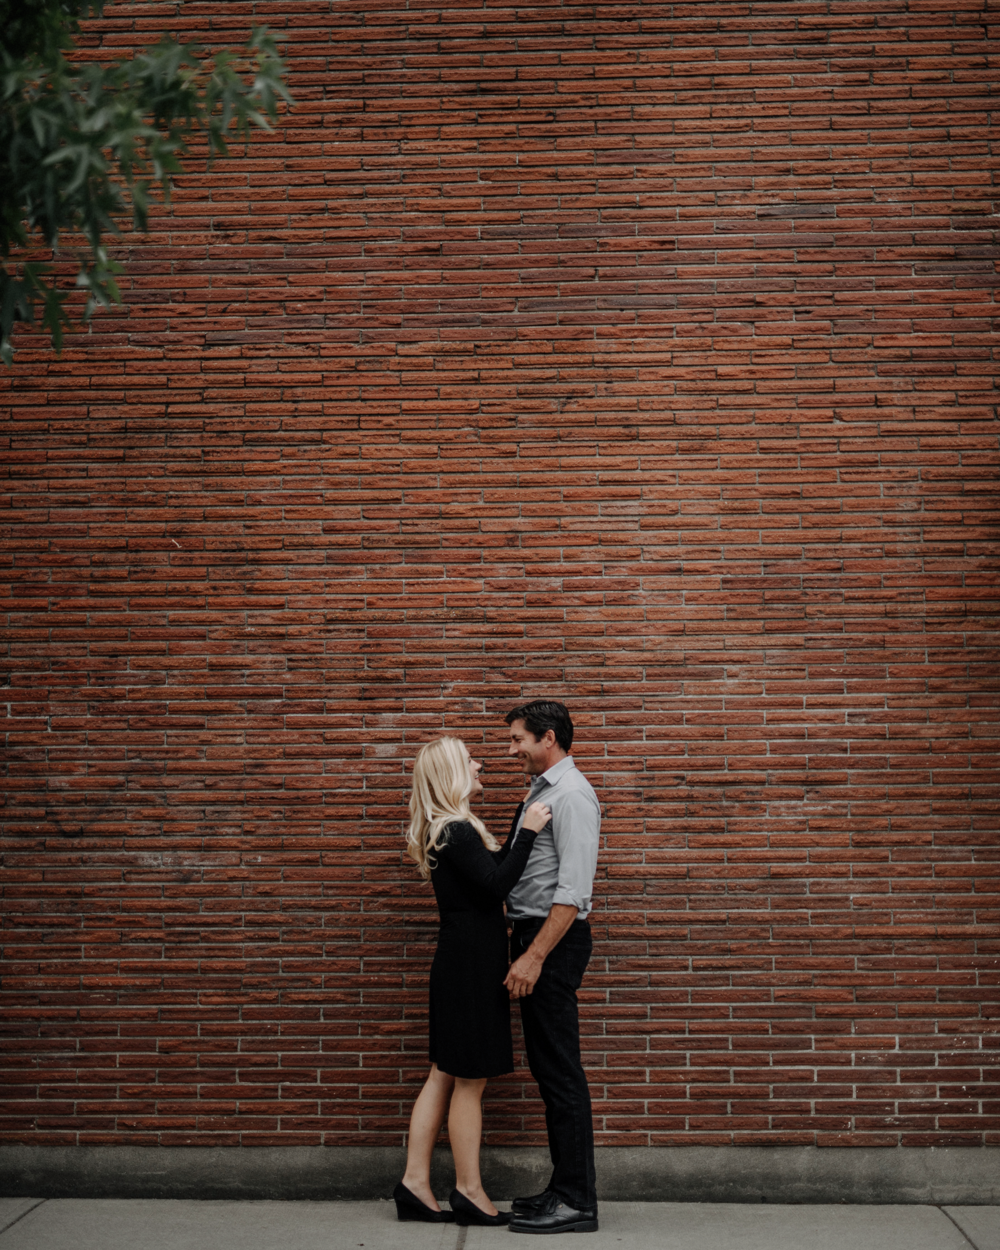 074-kaoverii-silva-ED-prewedding-vancouver-photography-chilliwack-blog.png